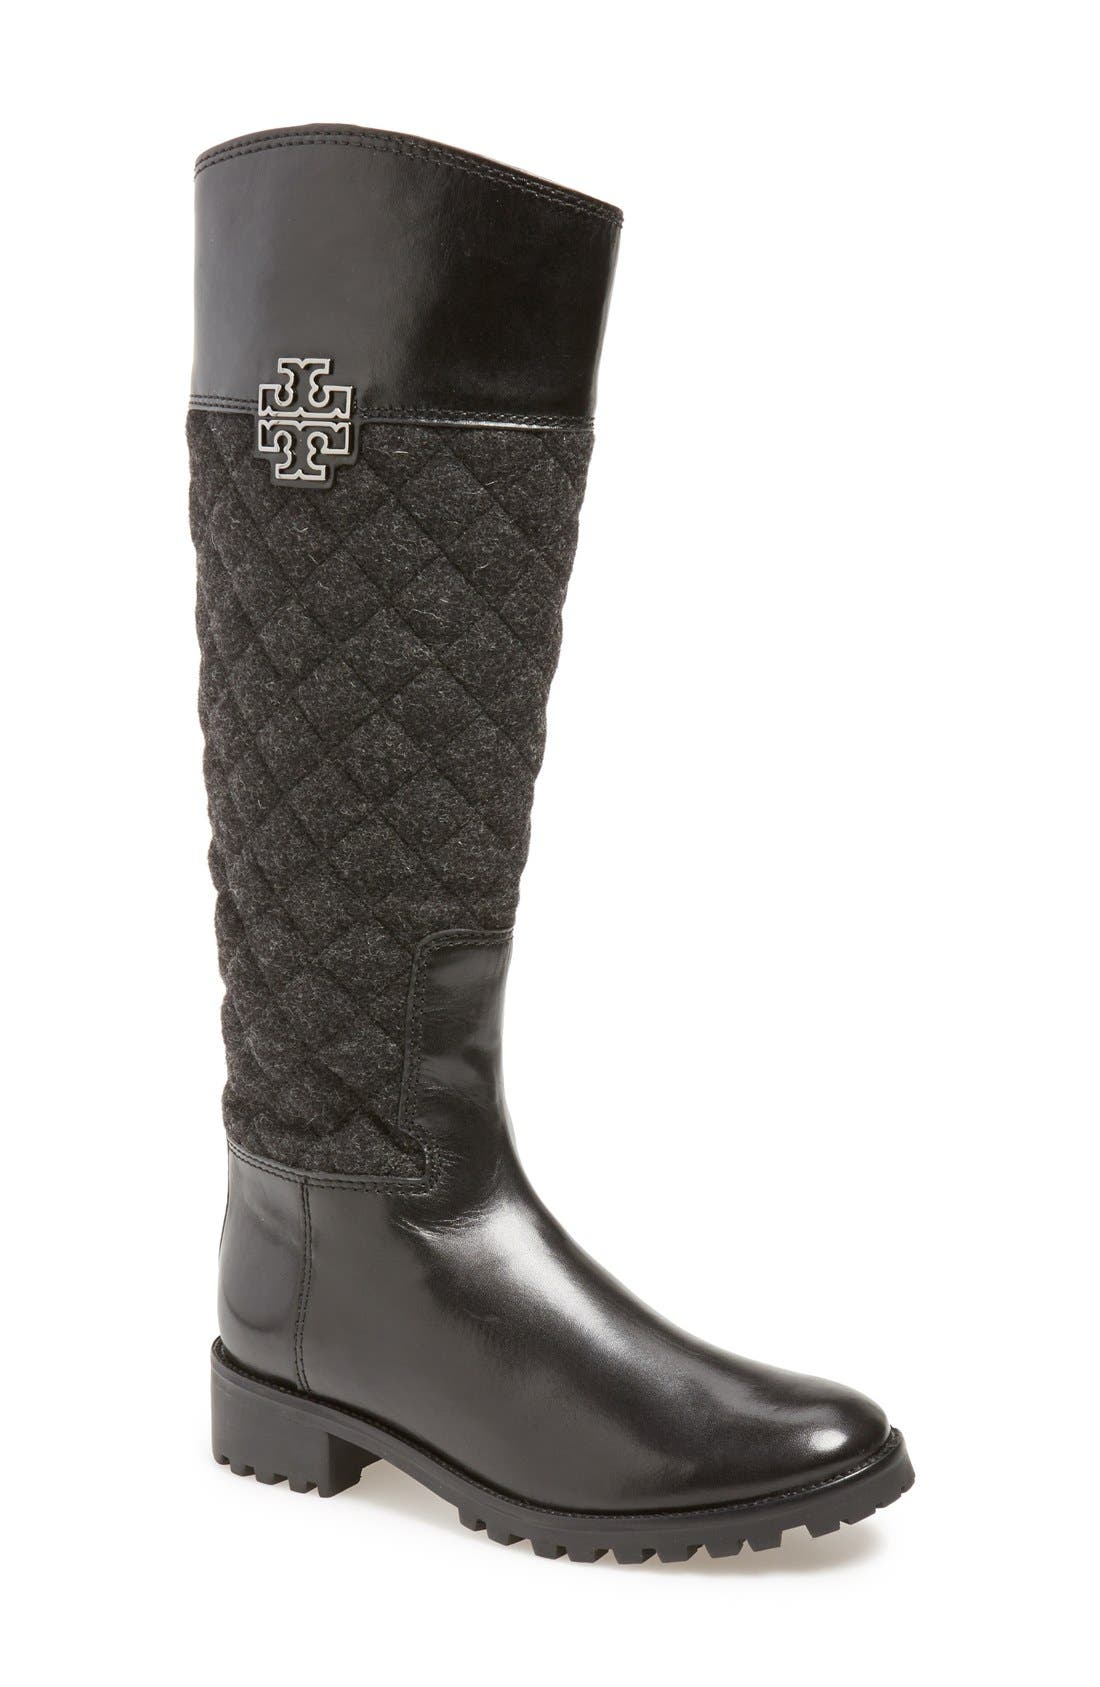 Main Image - Tory Burch 'Melinda' Riding Boot (Women) (Nordstrom Exclusive)